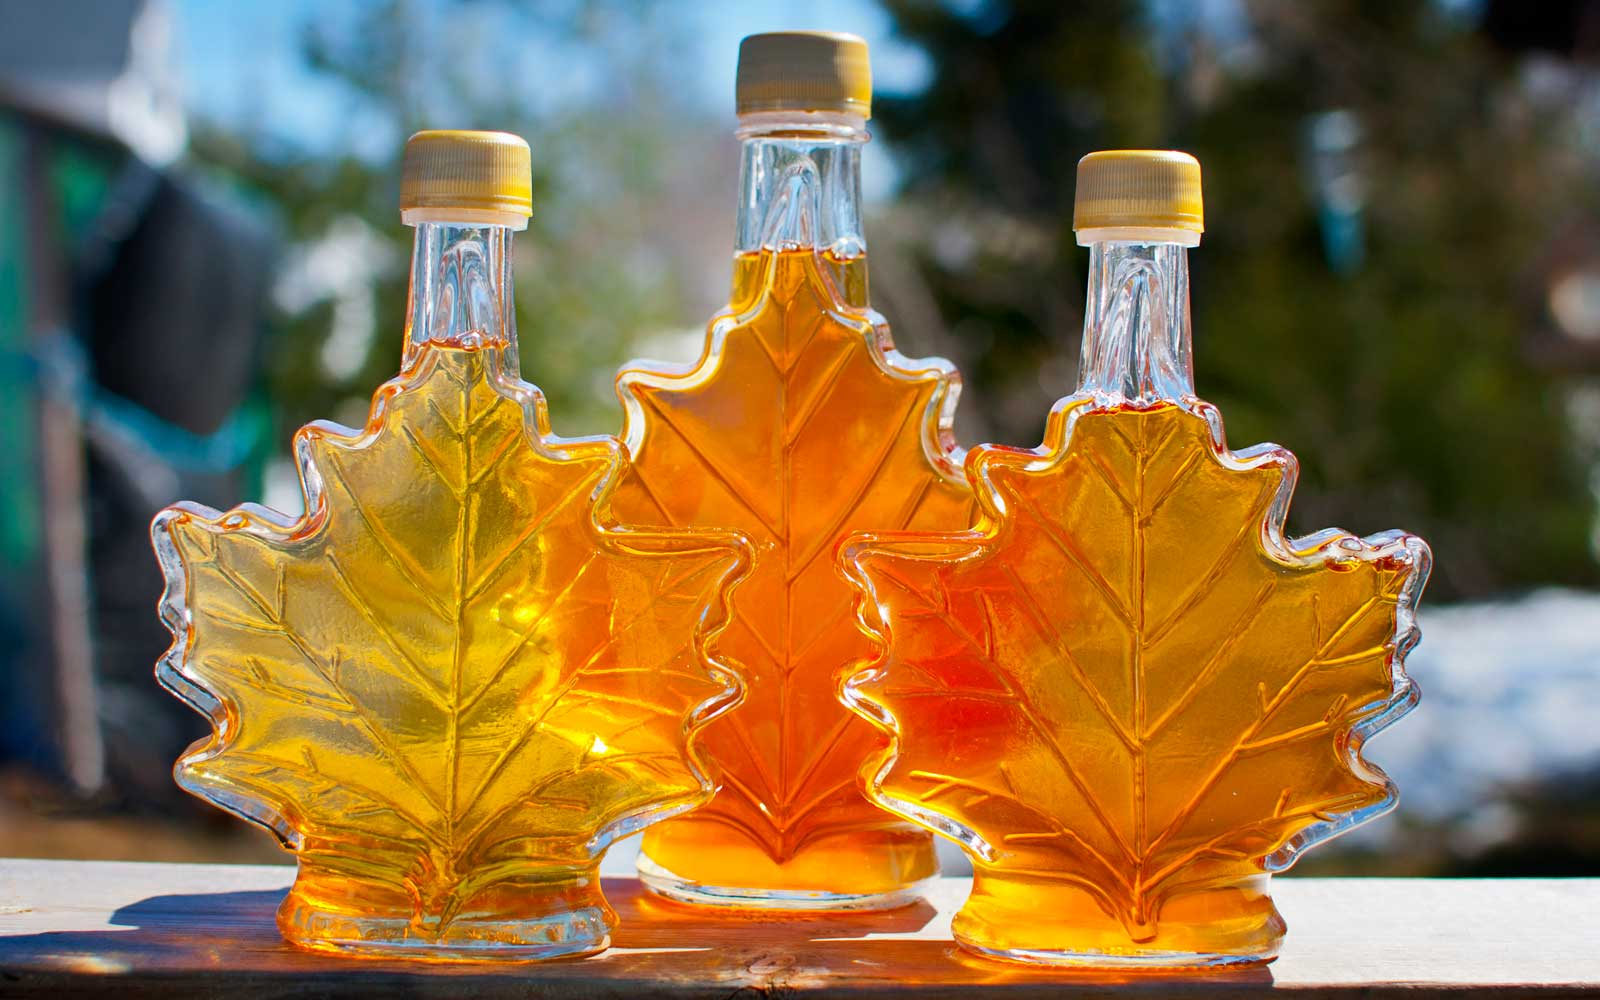 Three bottles of maple syrup made by a backyard hobbyist in Nova Scotia.